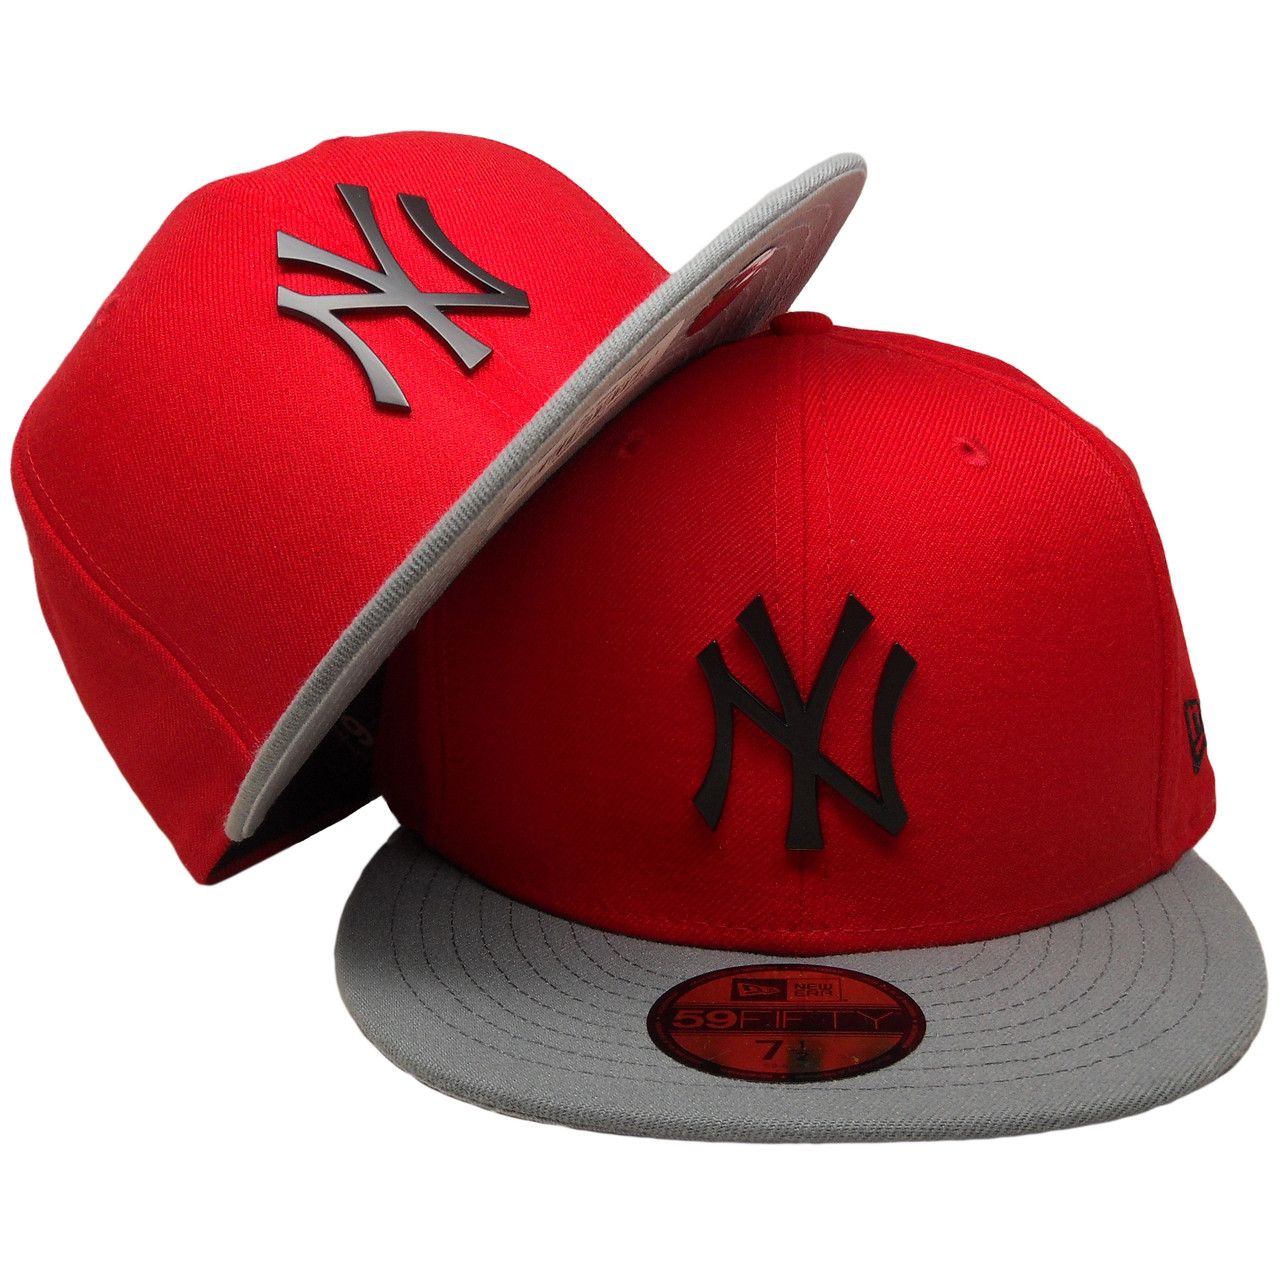 4d666f536 New York Yankees New Era Custom 59Fifty Fitted - Red, Gray, Black Badge logo